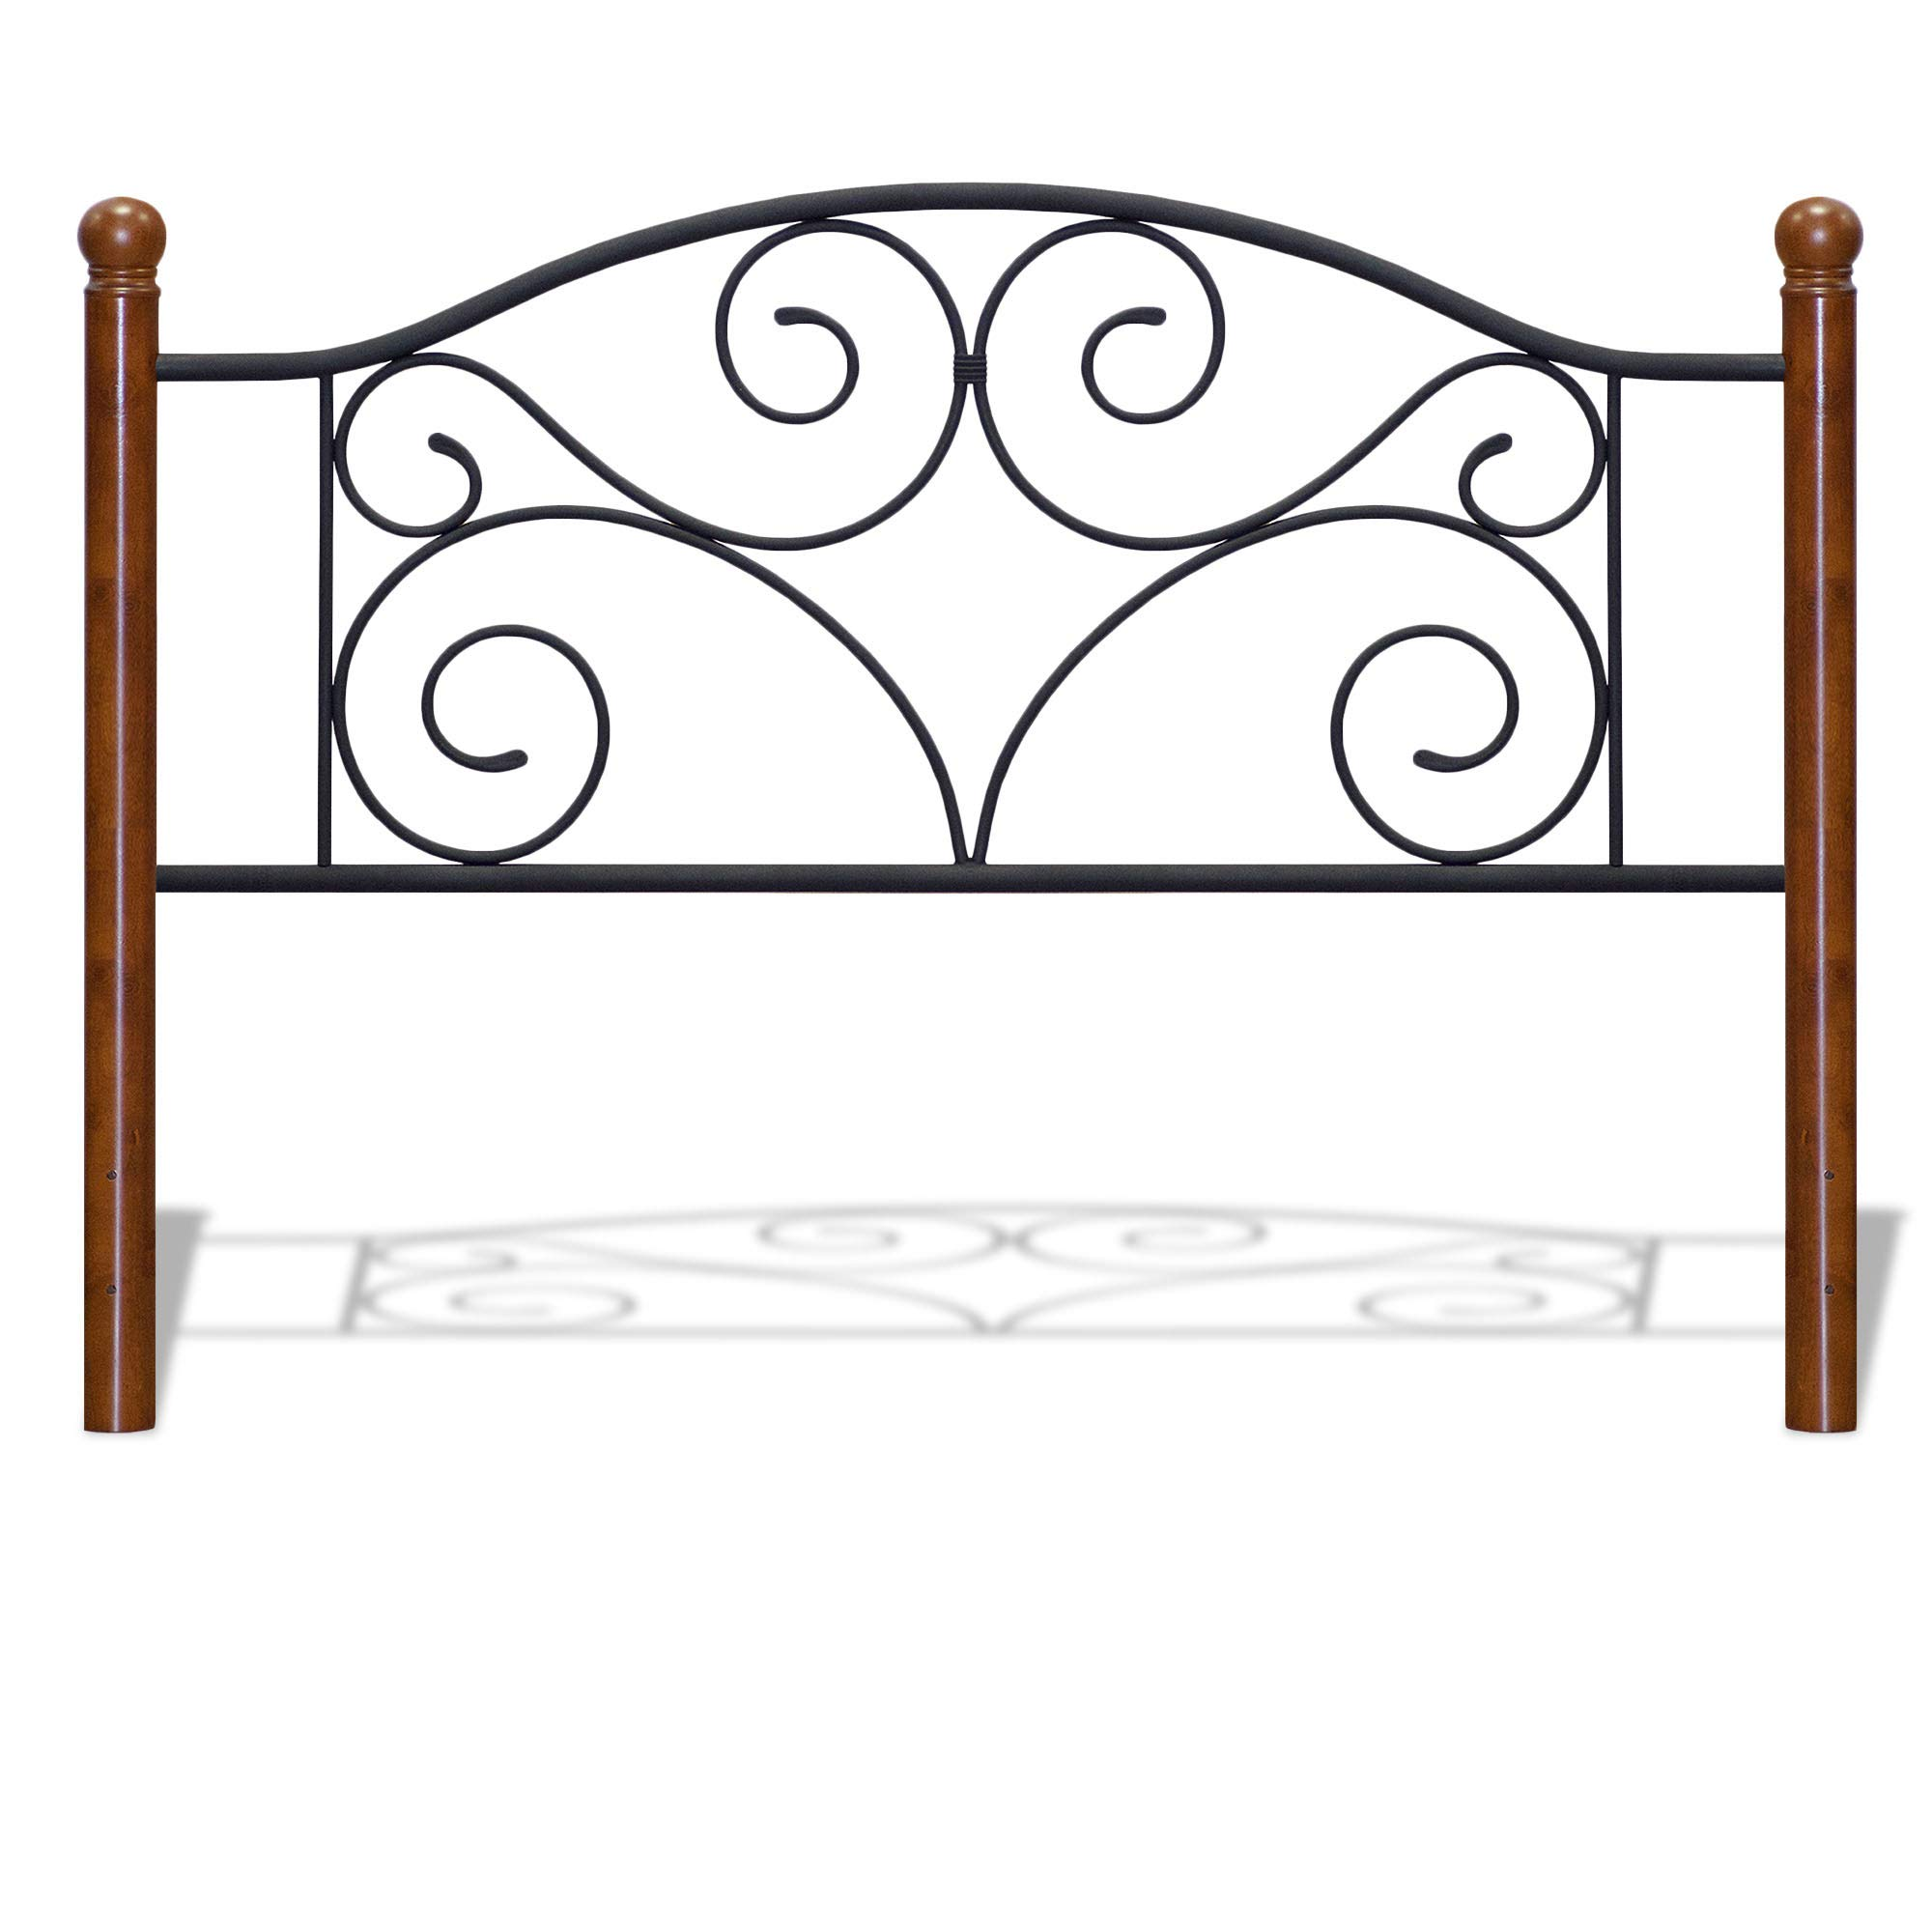 Fashion Bed Group Doral Headboard with Dark Walnut Wood Posts and Metal Grill, King, Matte Black Finish by Fashion Bed Group